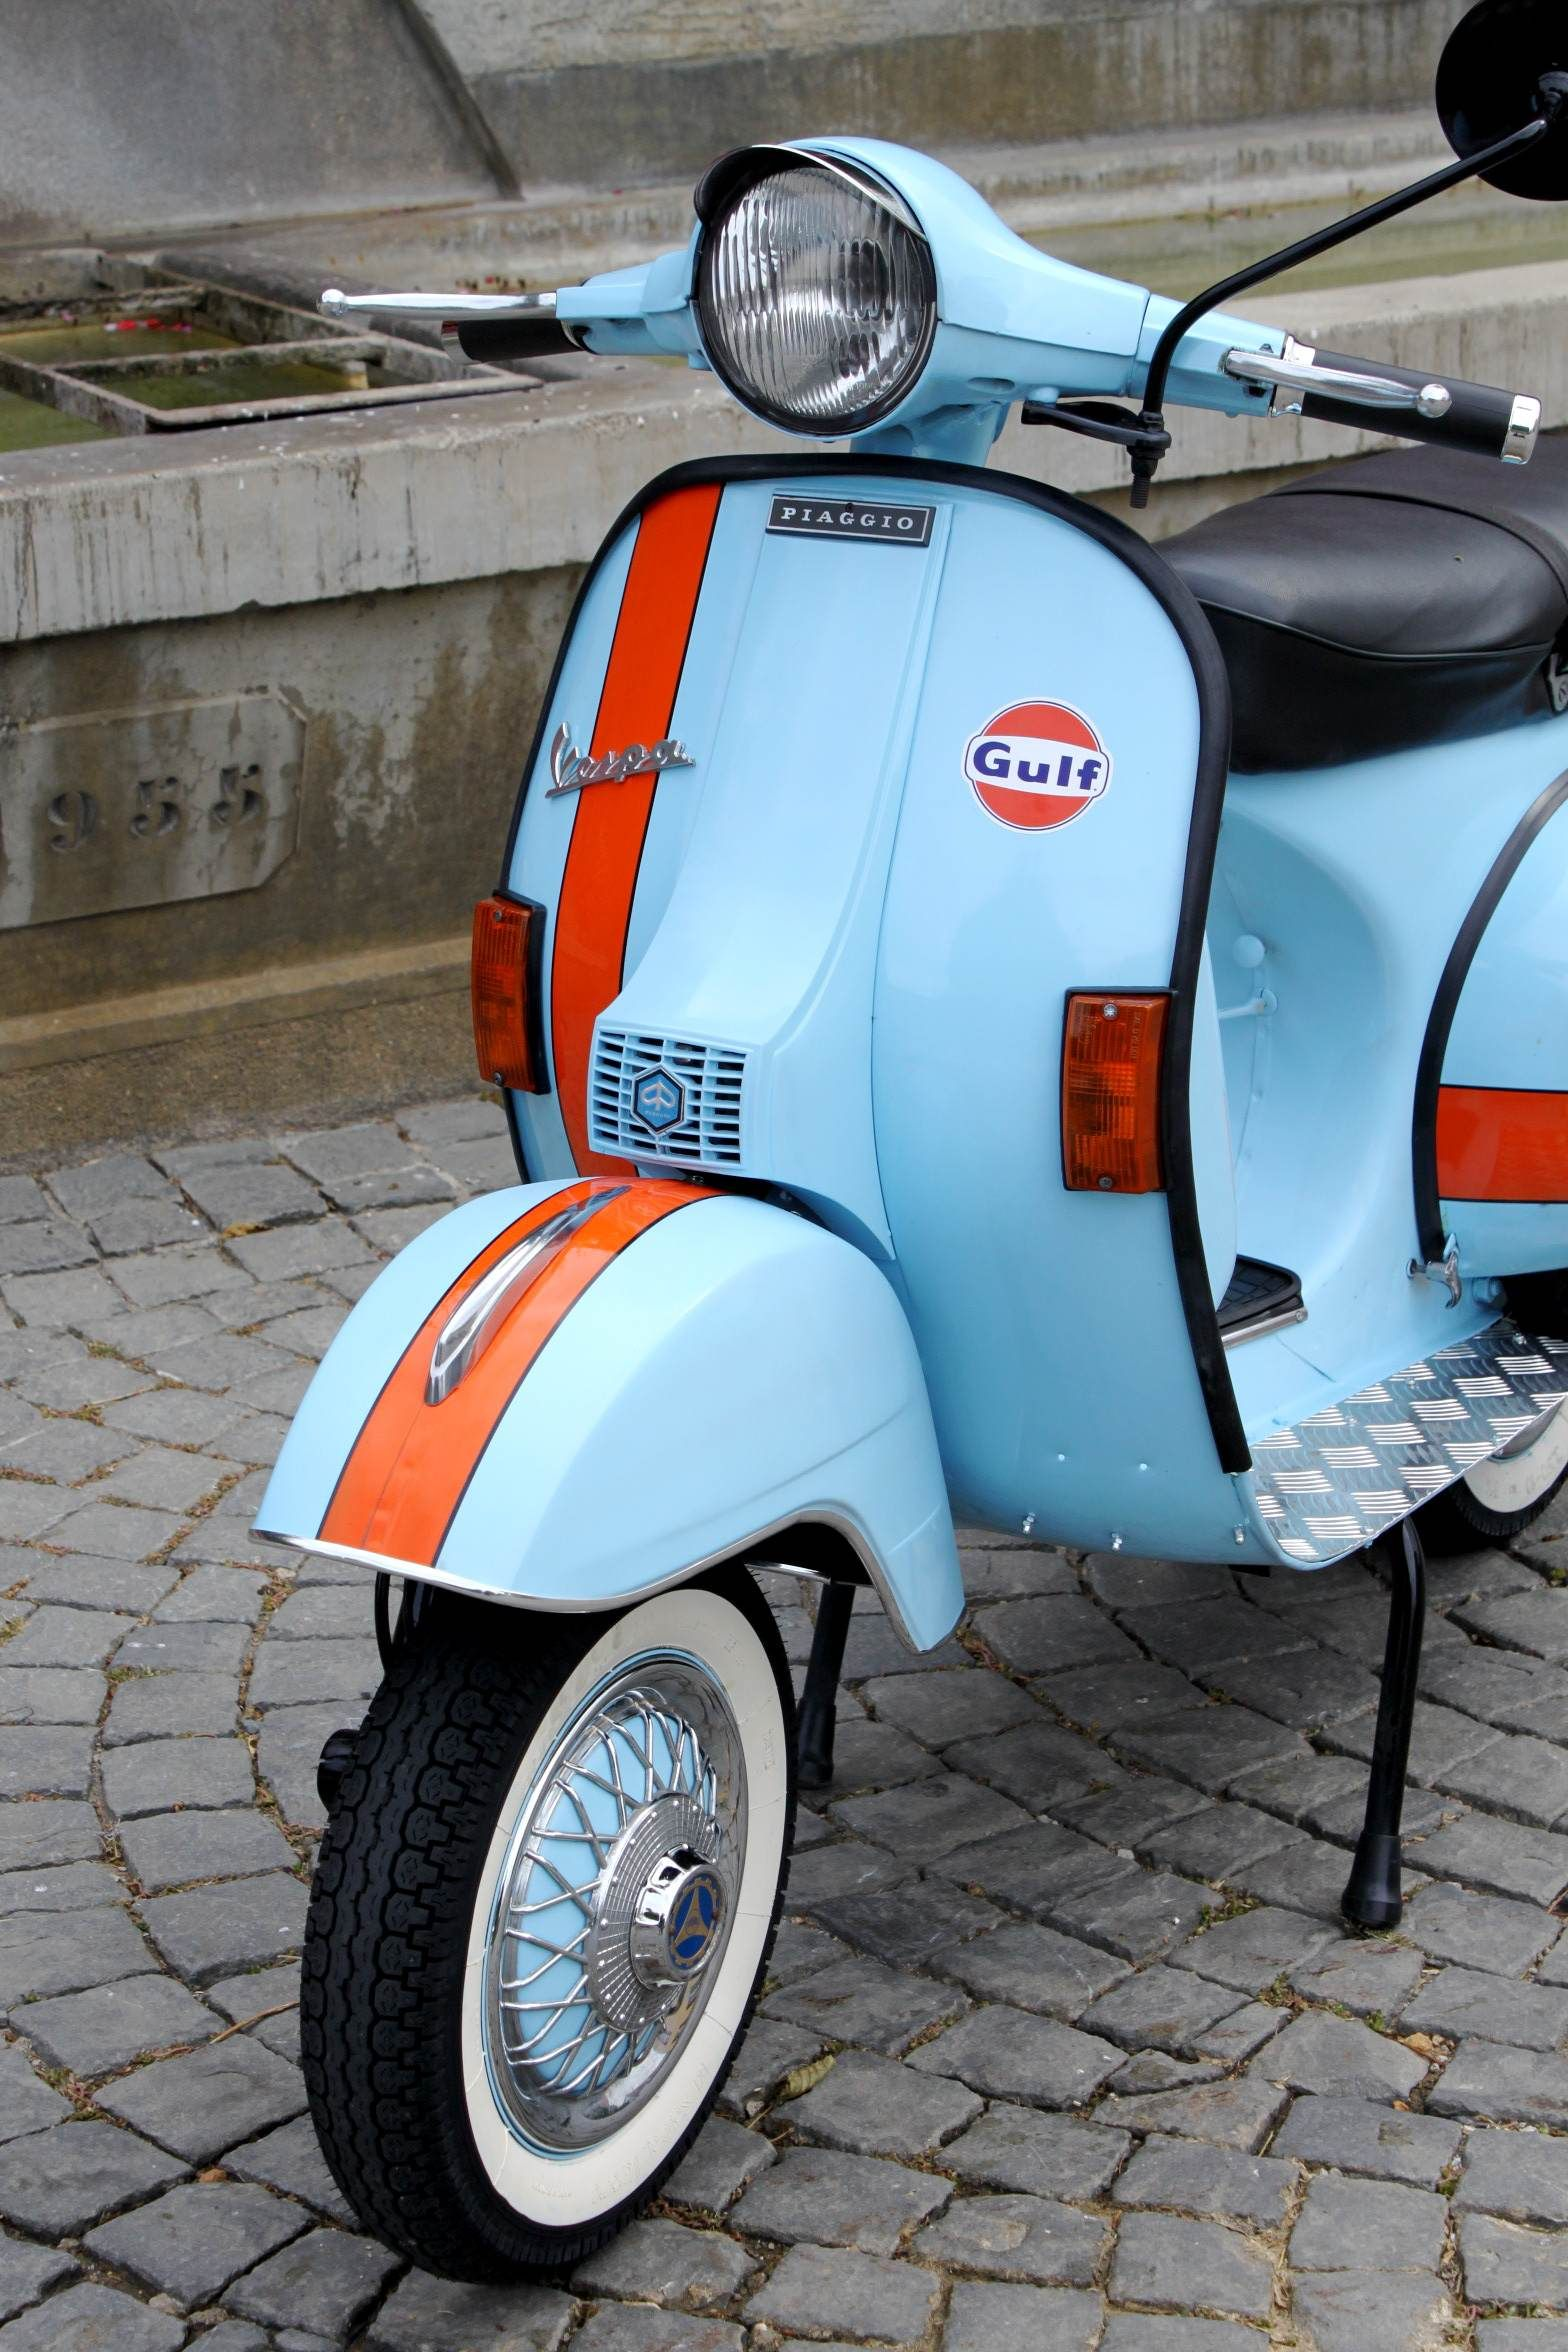 gulf vespa roller scooter vespa ape piaggio autos. Black Bedroom Furniture Sets. Home Design Ideas